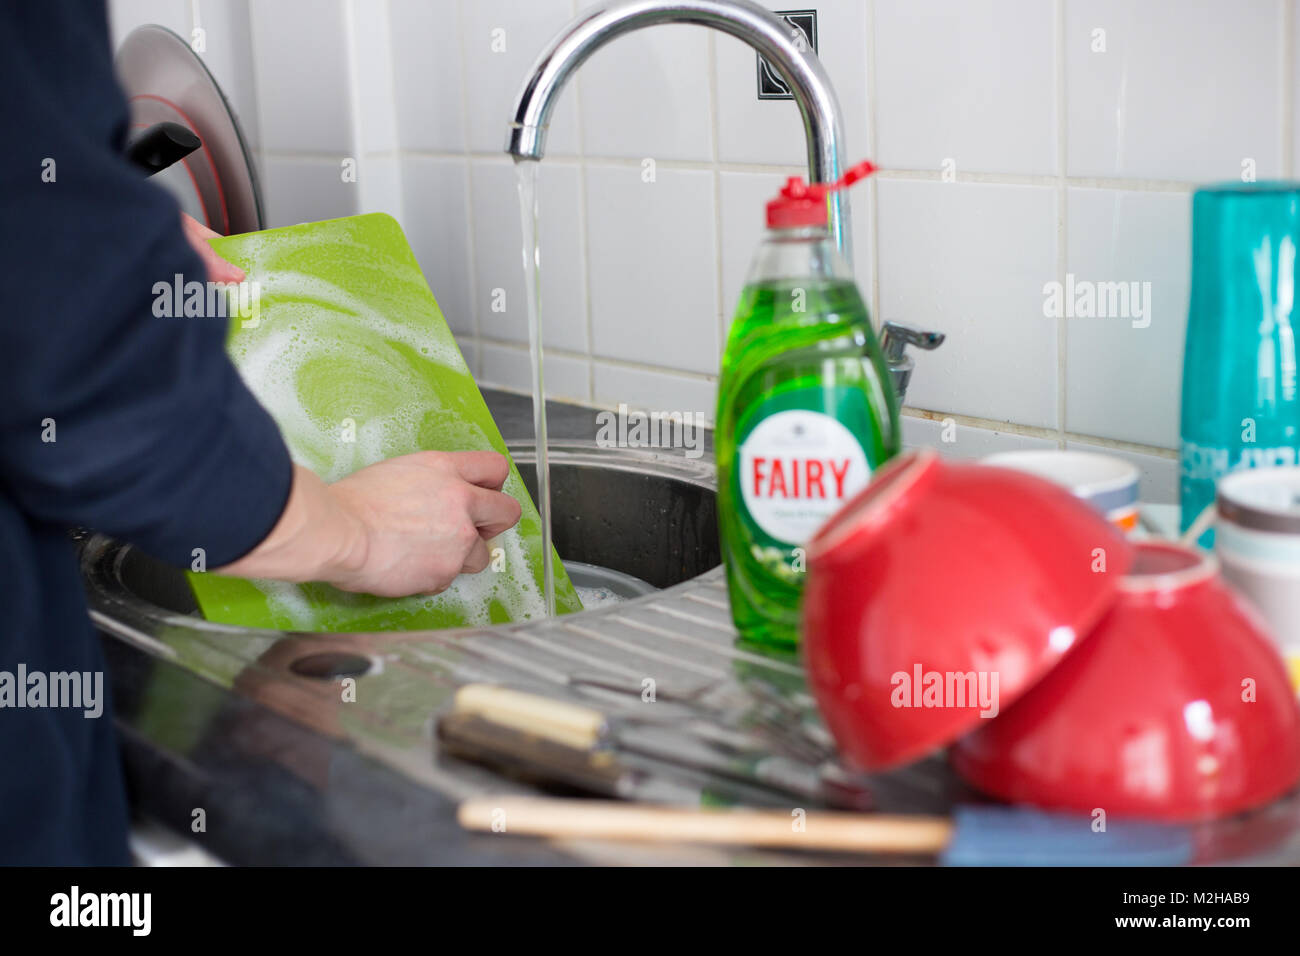 CARDIFF, UNITED KINGDOM.  7 February 2018.  Stock image for use in article detailing harmful effects of washing - Stock Image